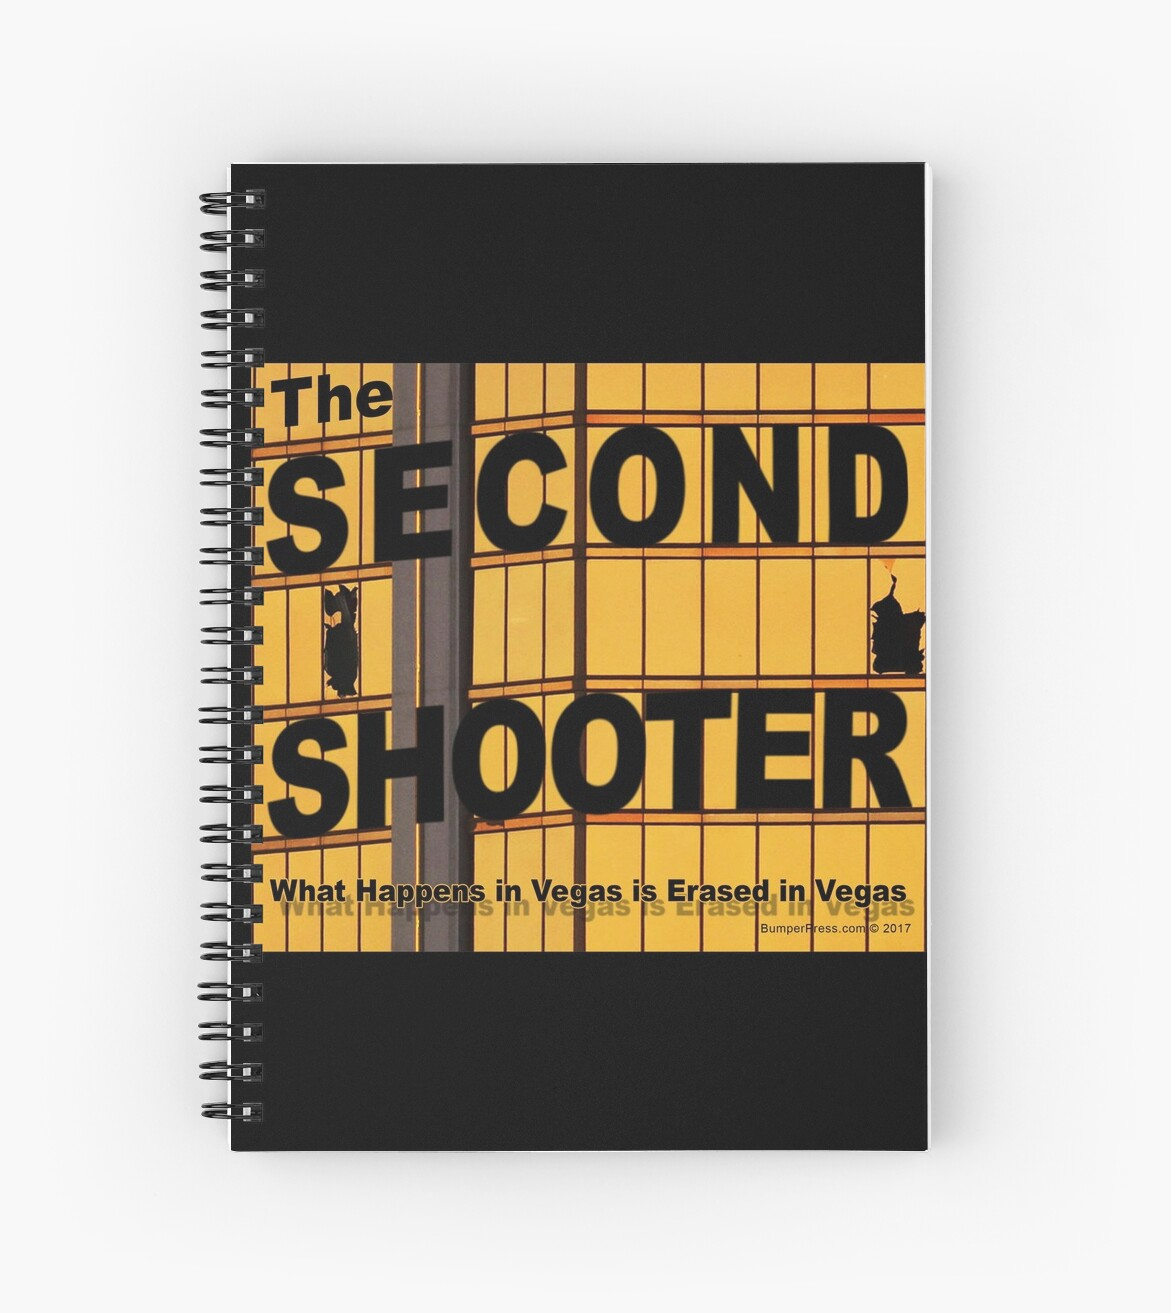 The Second Shooter by EyeMagined